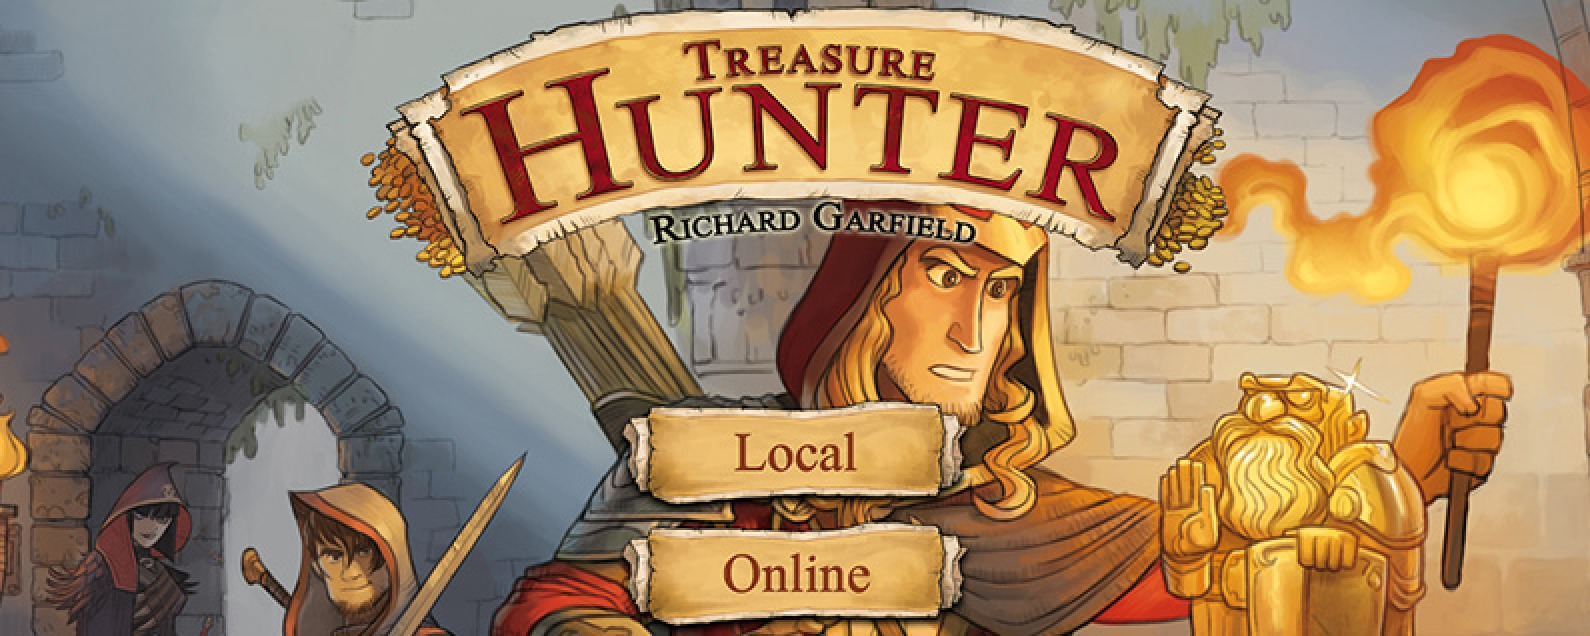 Best Board Game Apps for iPad: TreasureHunter Review